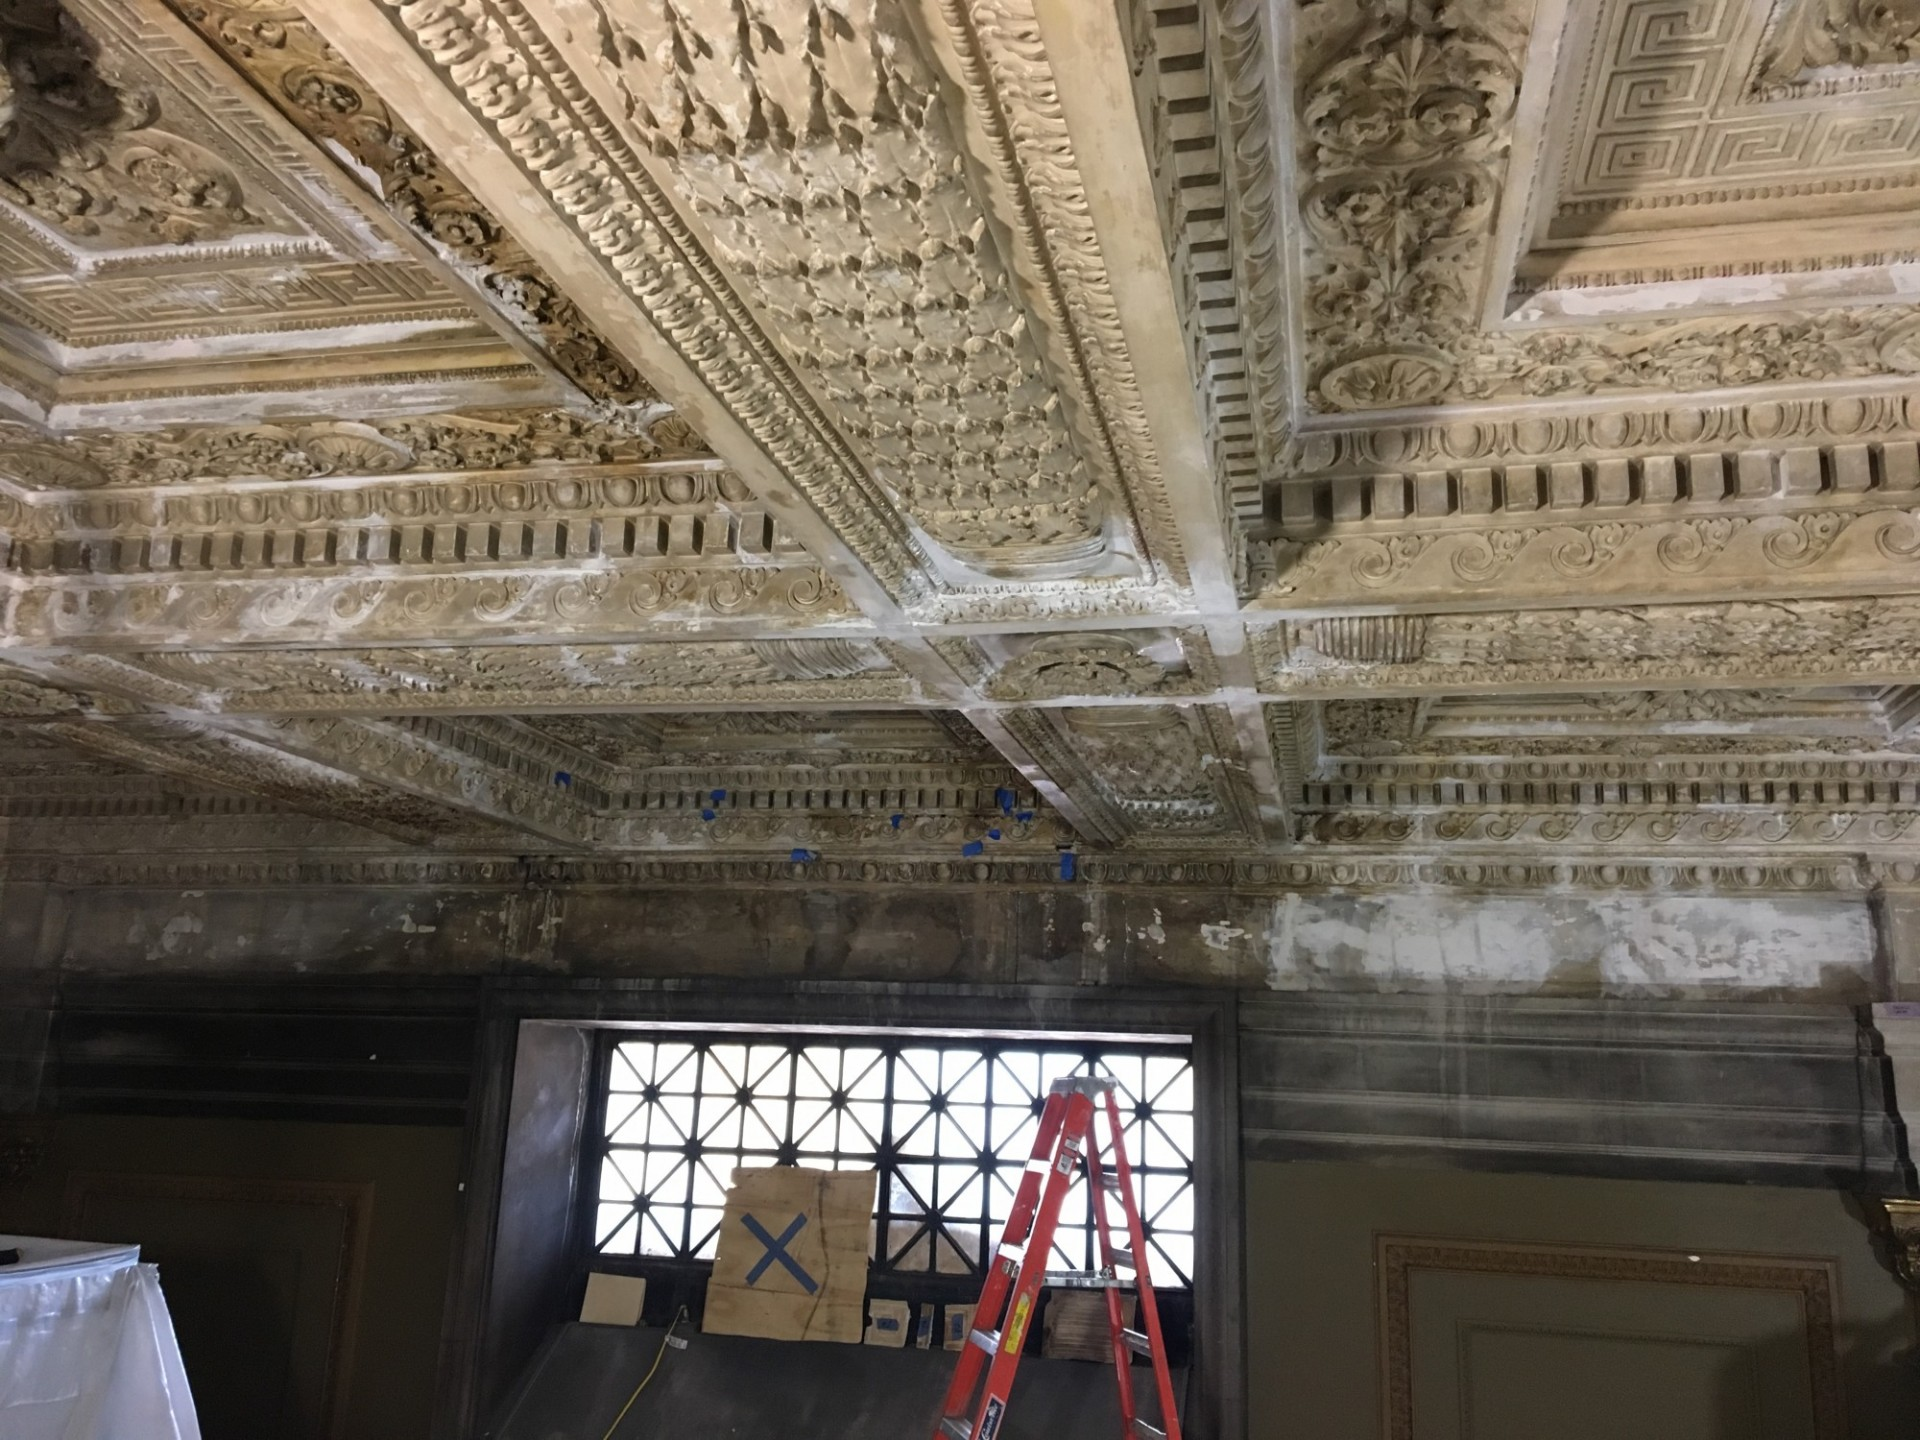 View of a larger section of plaster ceiling repairs.